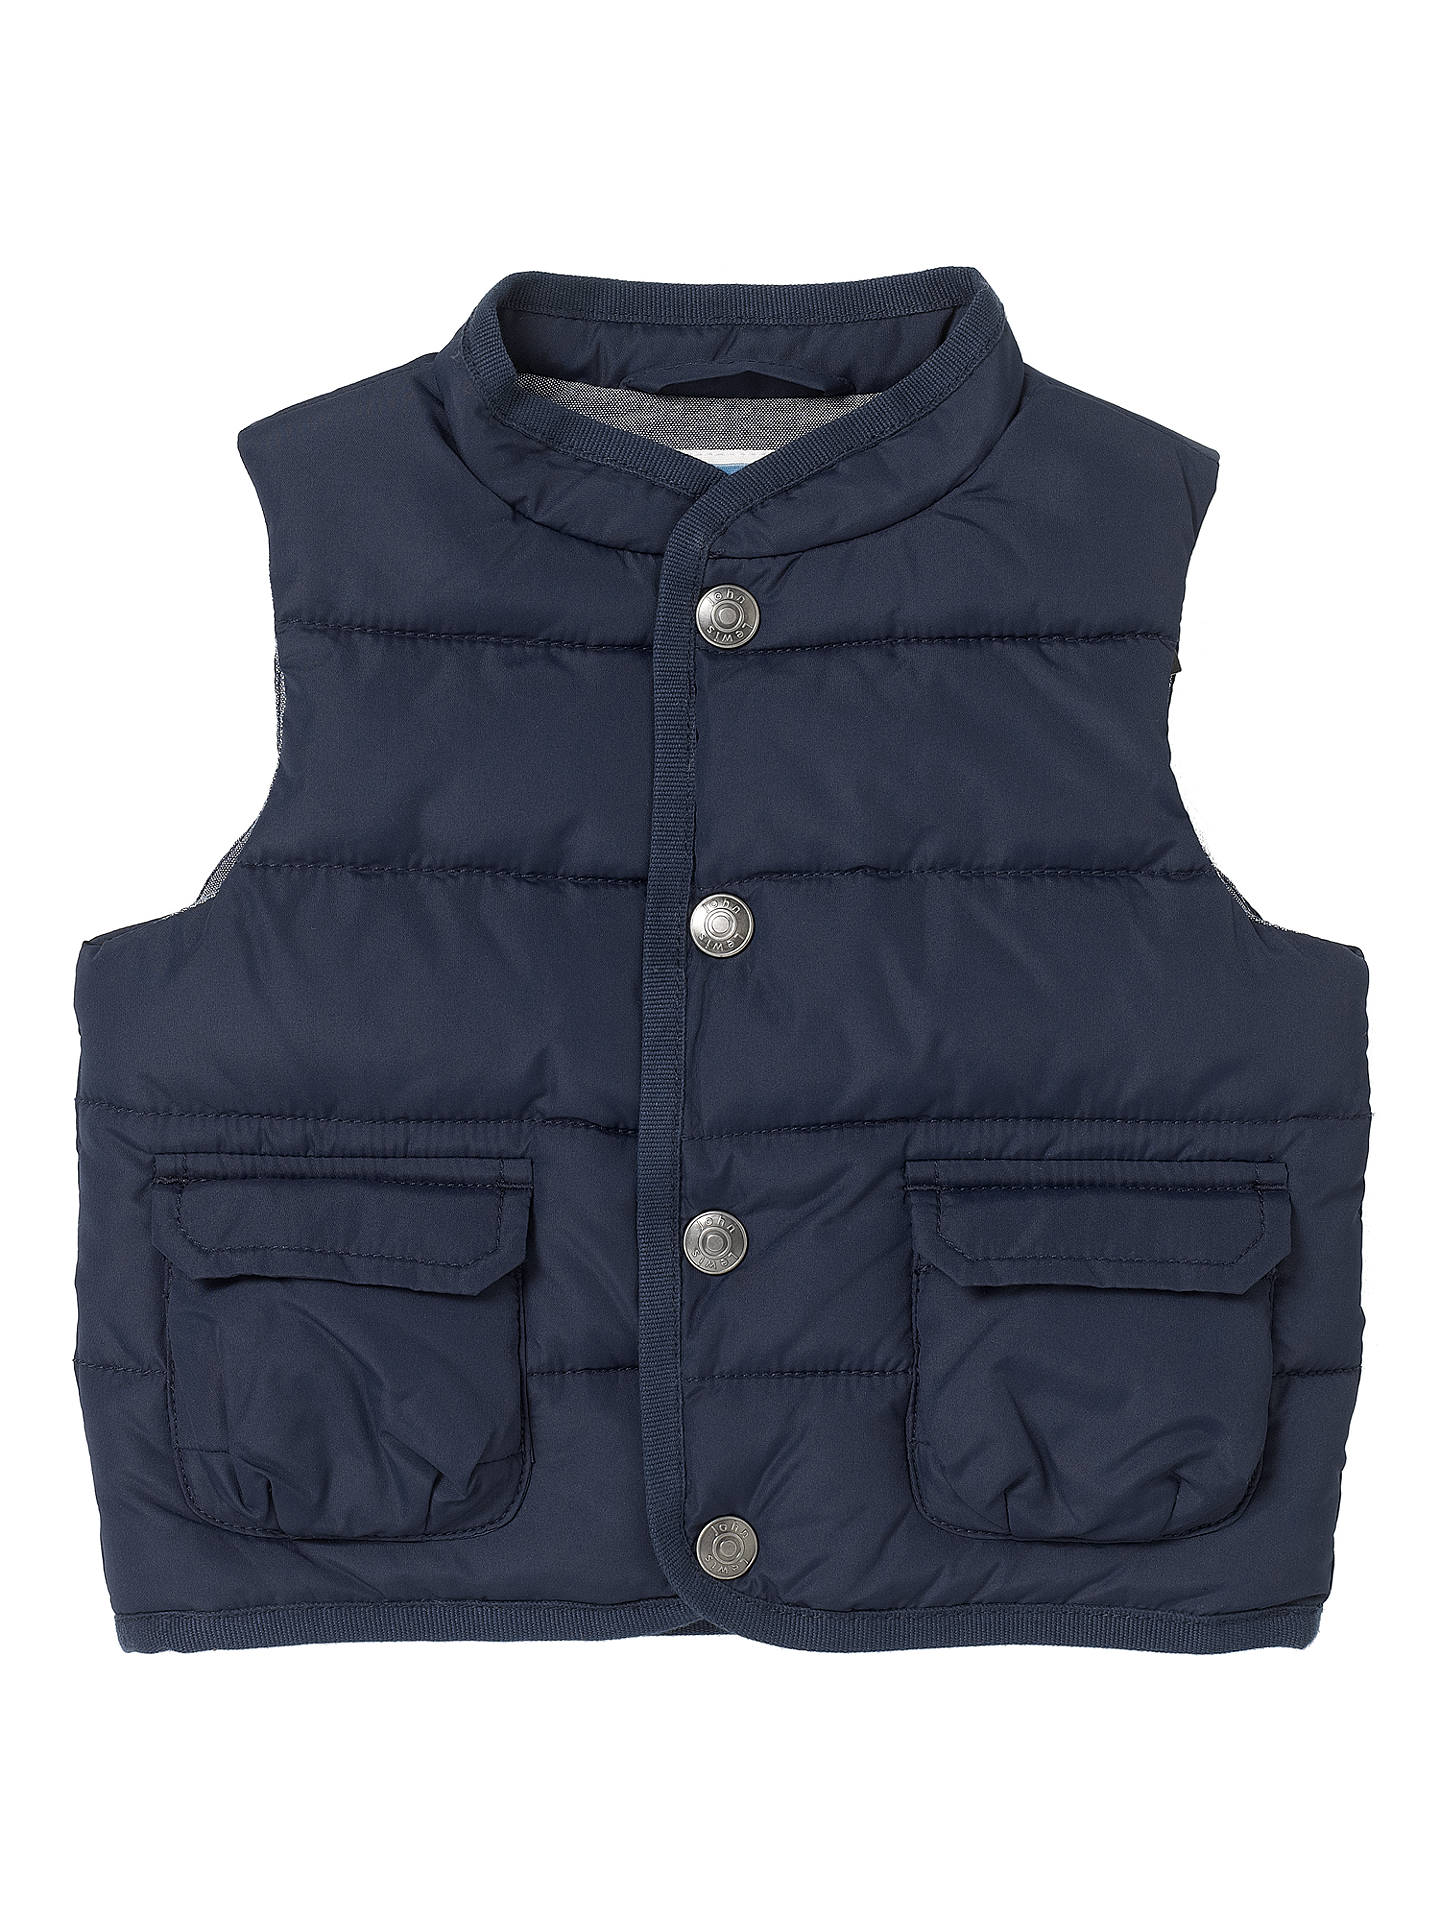 Buy John Lewis Baby Padded Gilet Sleeveless Jacket, Navy, 3-6 months Online at johnlewis.com